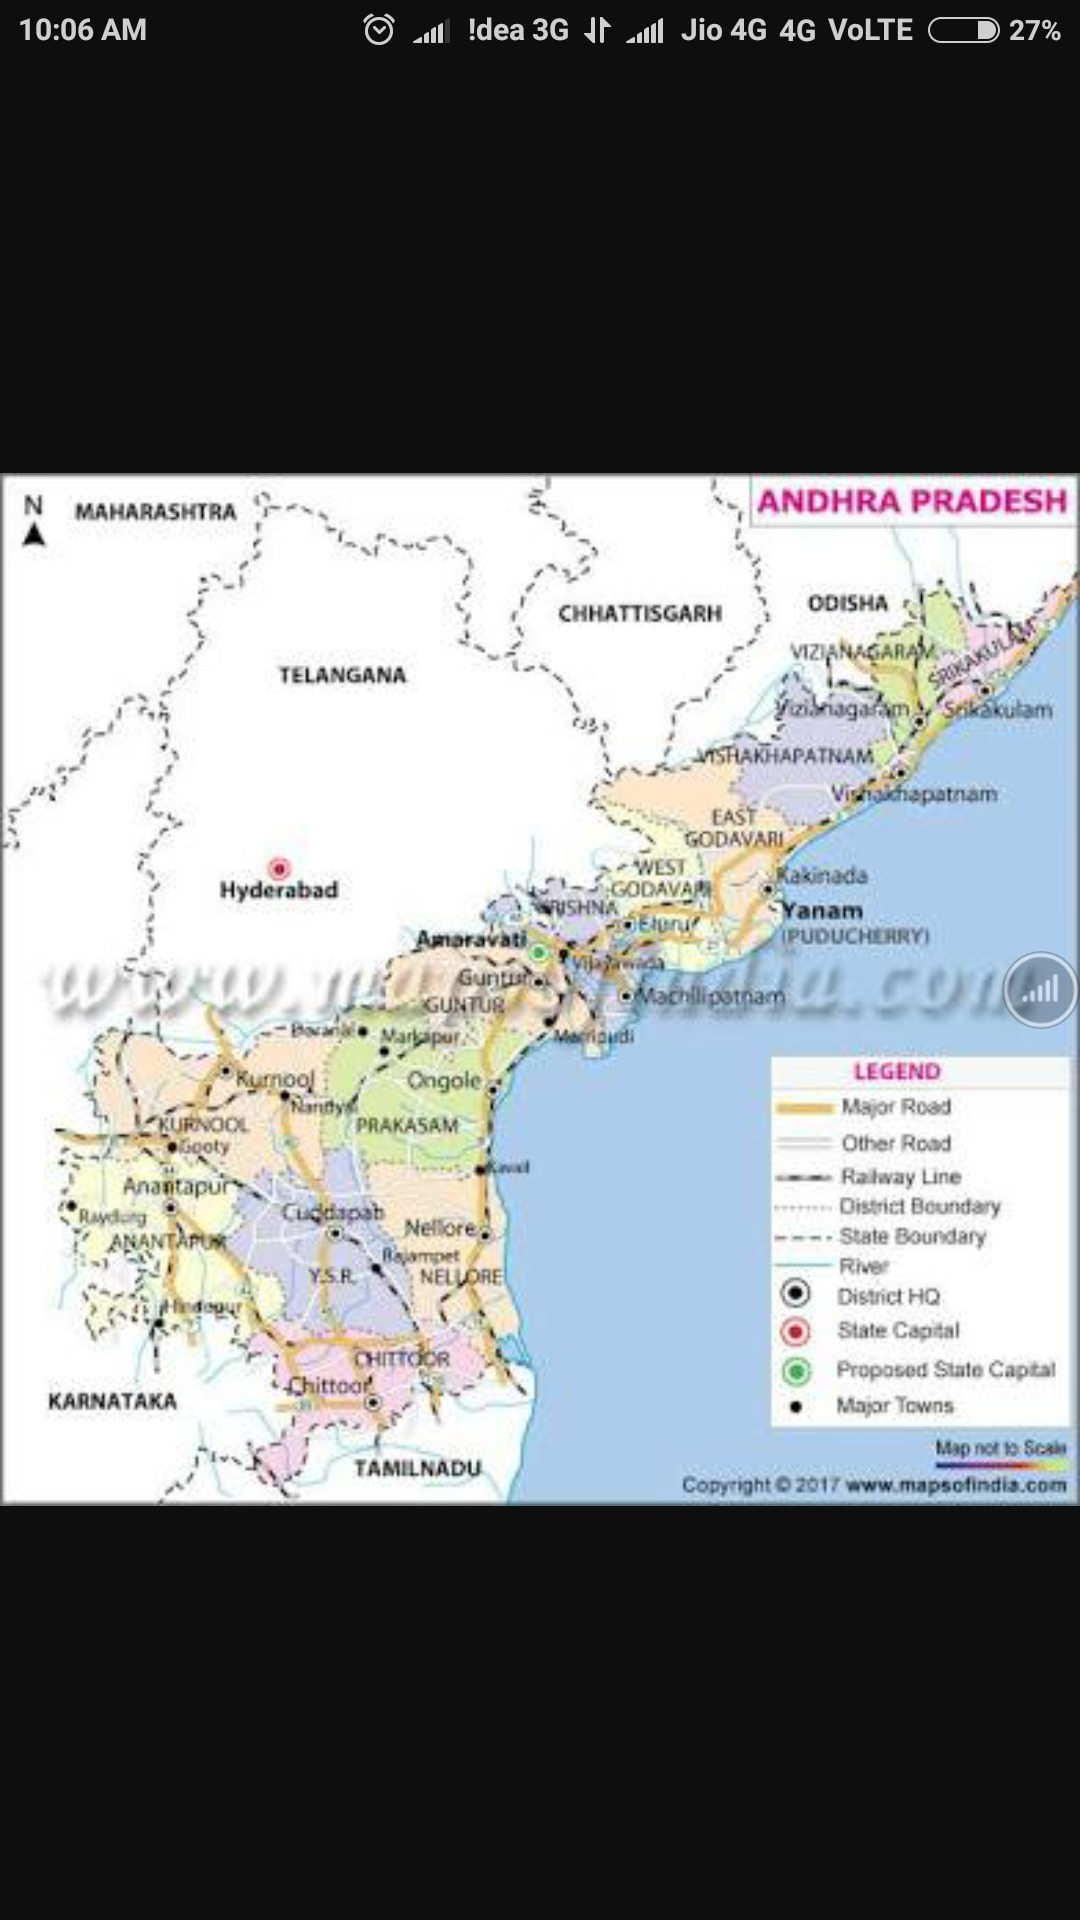 List of rivers in andhra pradesh district wise in map   Brainly in Download jpg